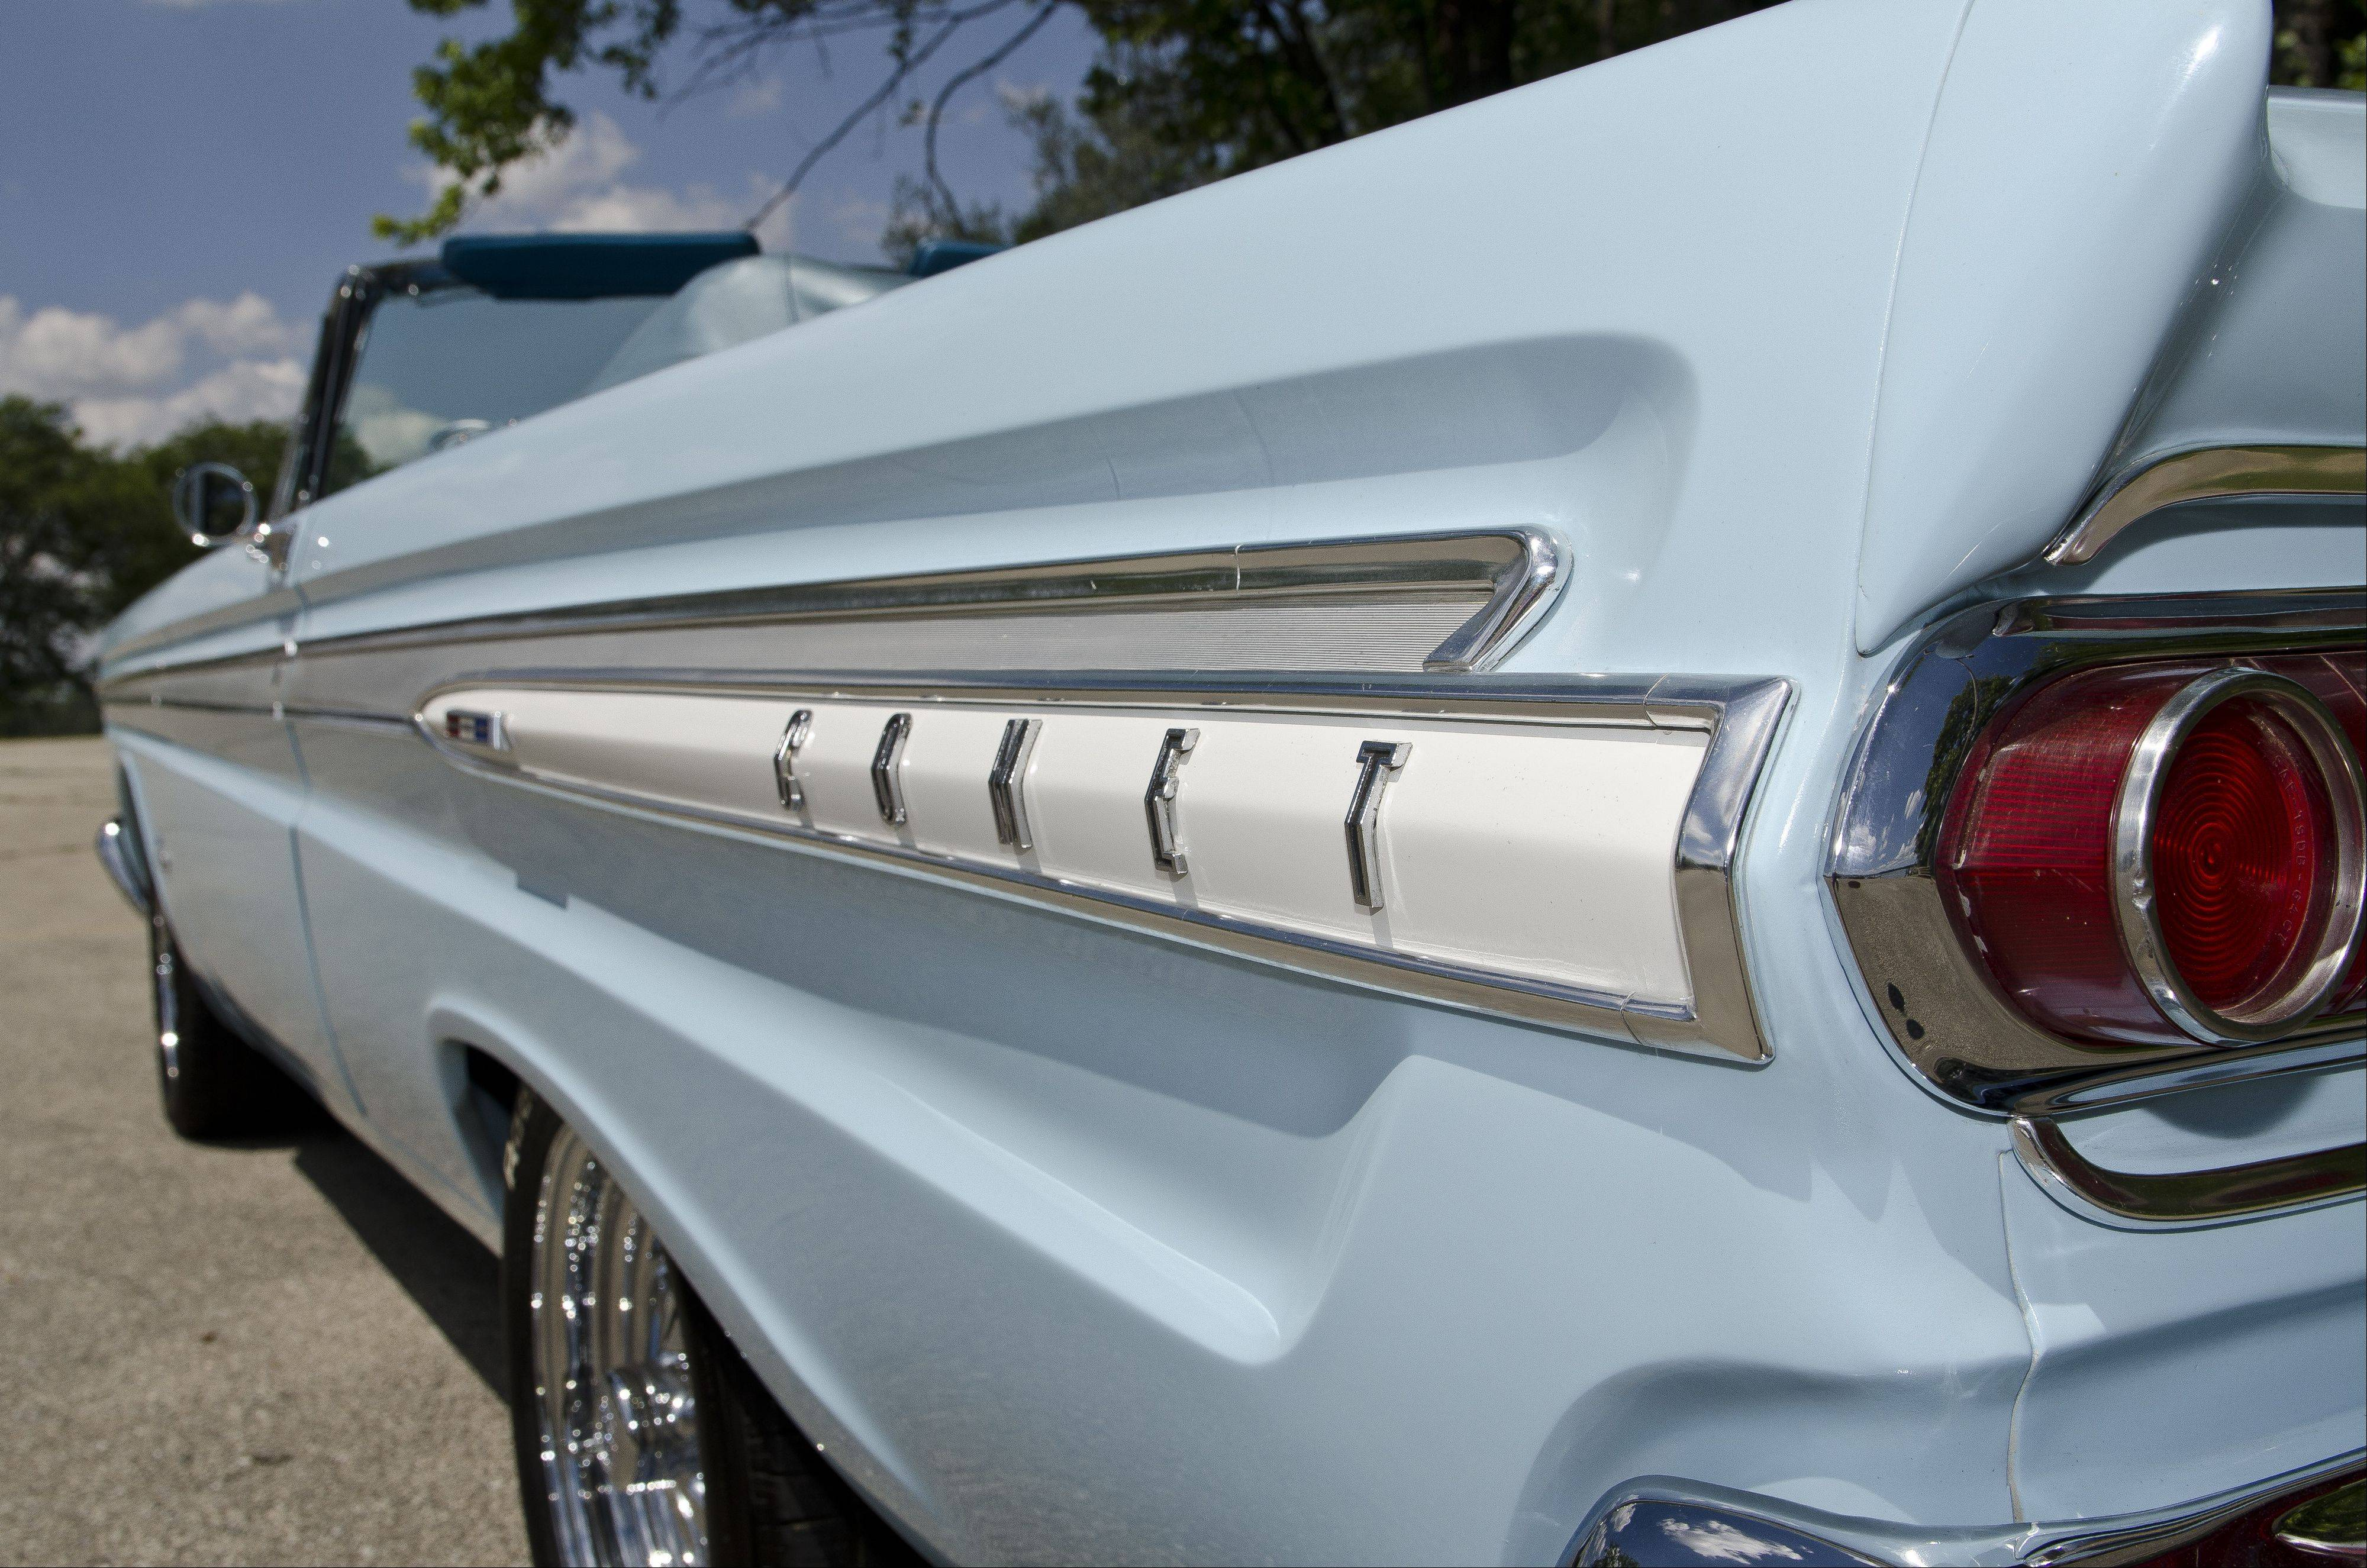 Mercury Comets with the factory Caliente package have added side trim that gives them more of an upscale look.